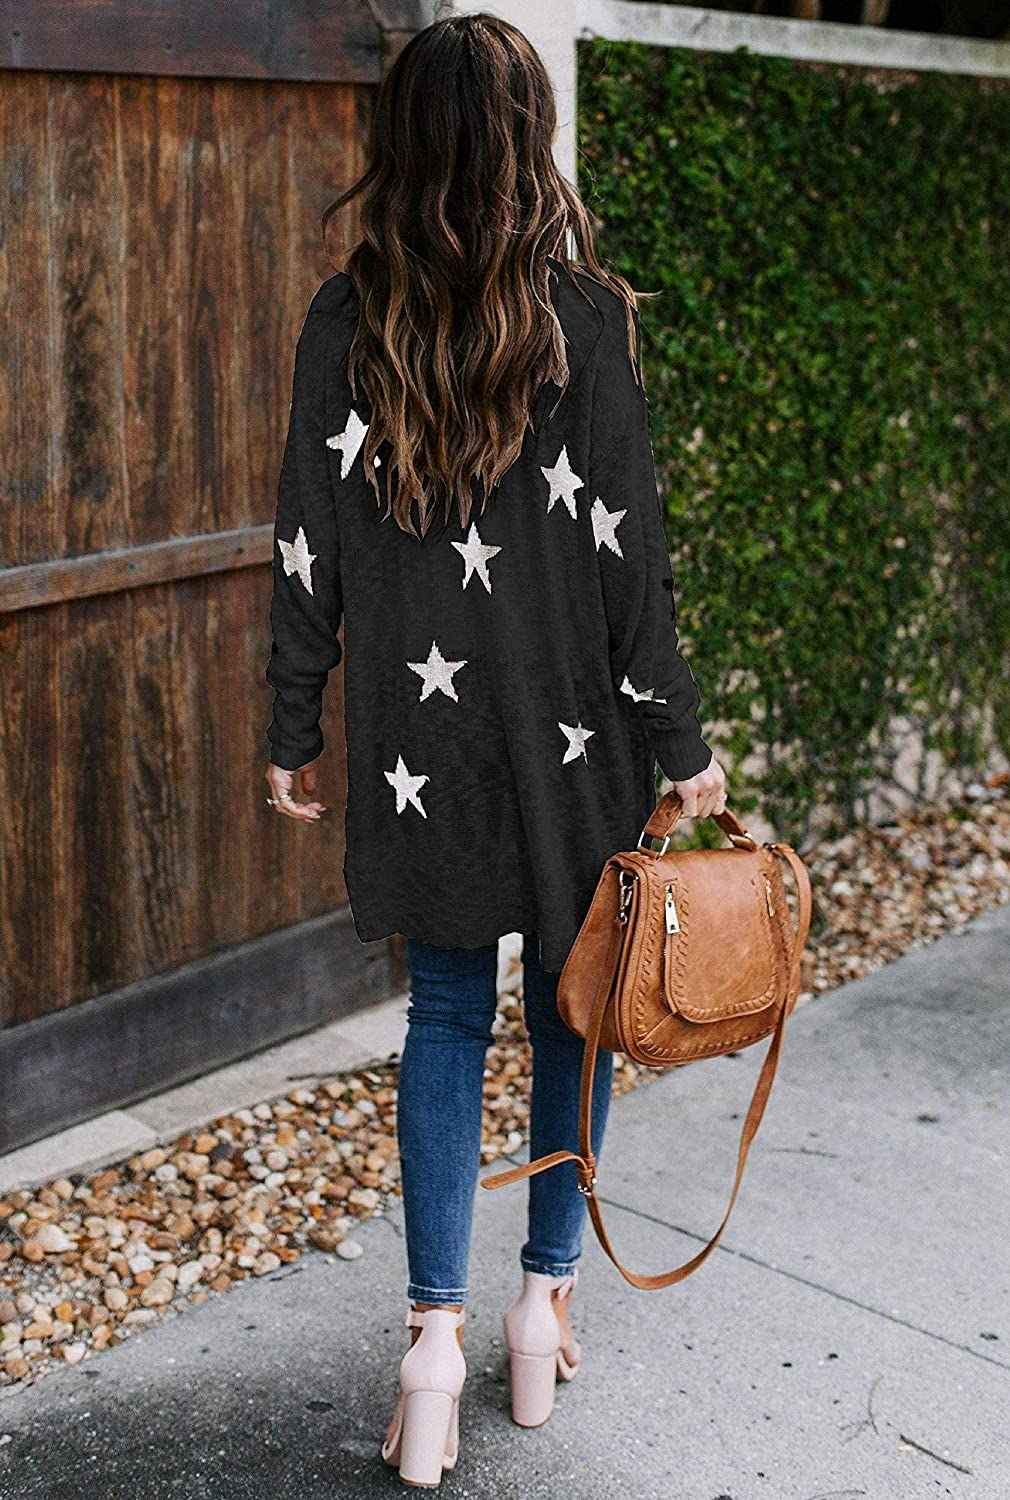 Womens Open Front Button Down Cardigans Plus Size Long Sleeve Star Print Casual Knit Sweater Outwears with Pockets